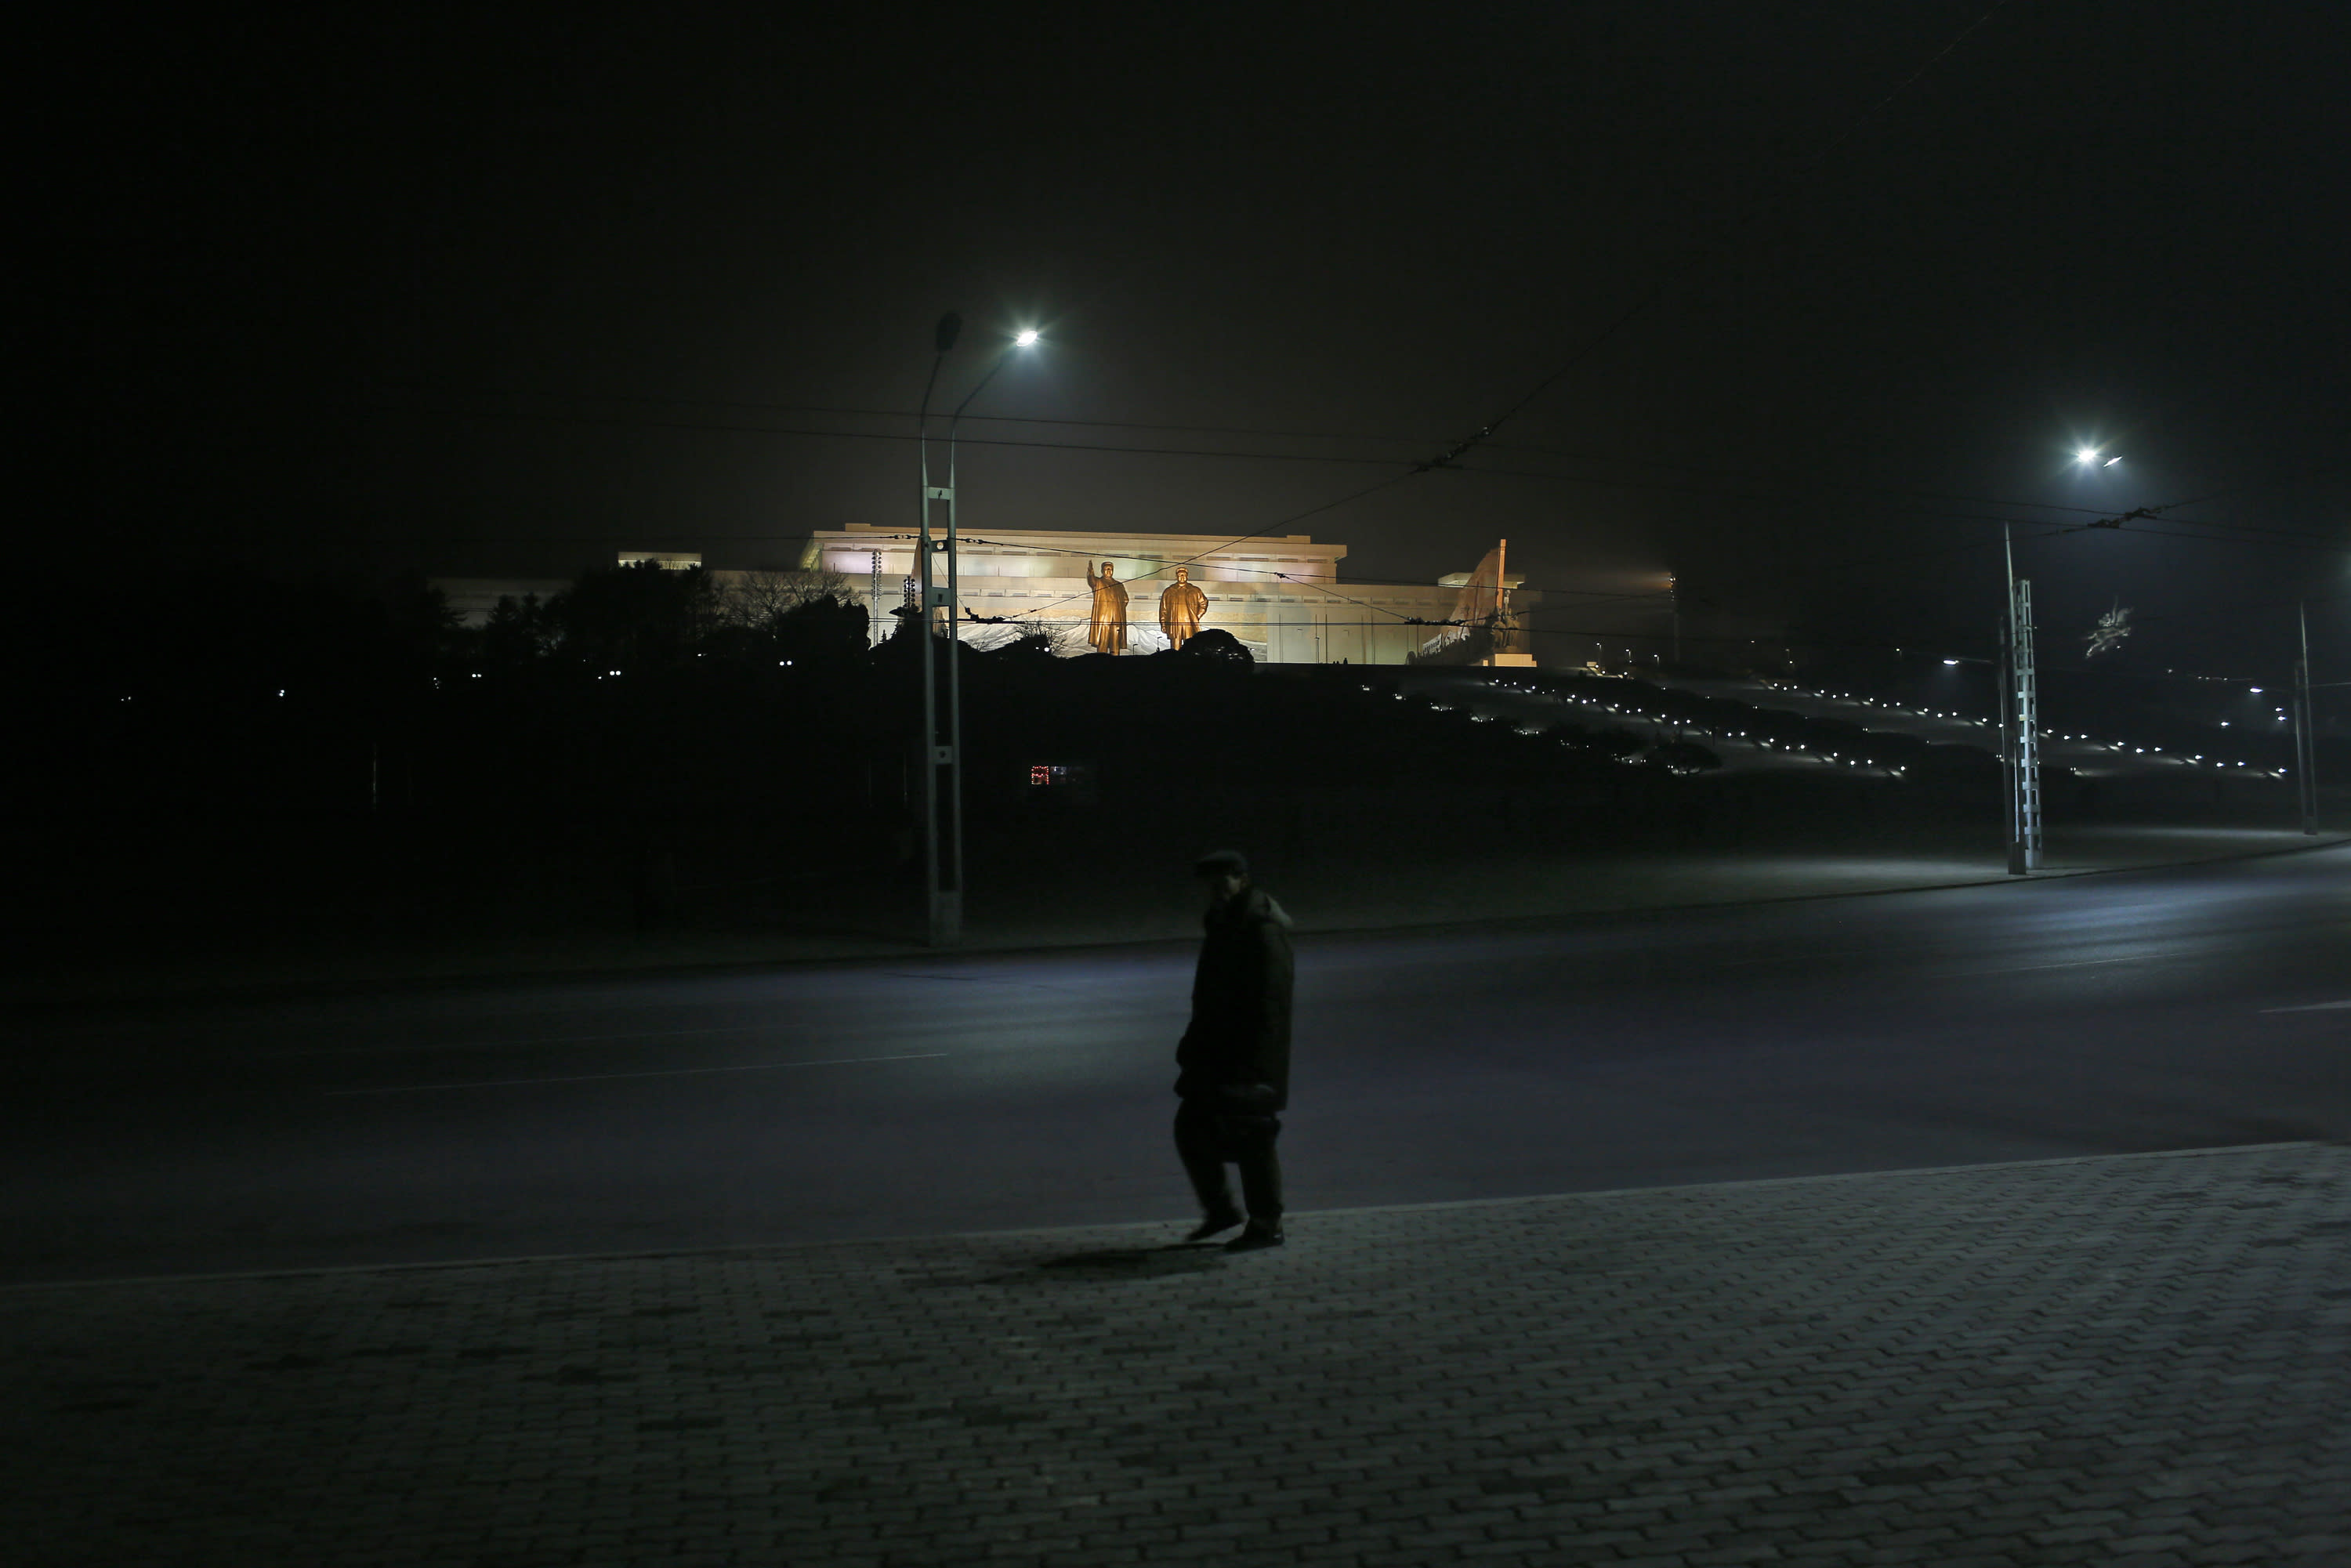 In this Tuesday Feb. 25, 2014 photo, a North Korean man walks on a street against the statues of the late leaders Kim Il Sung and Kim Jong Il at Mansu Hill in Pyongyang, North Korea. (AP Photo/Vincent Yu)